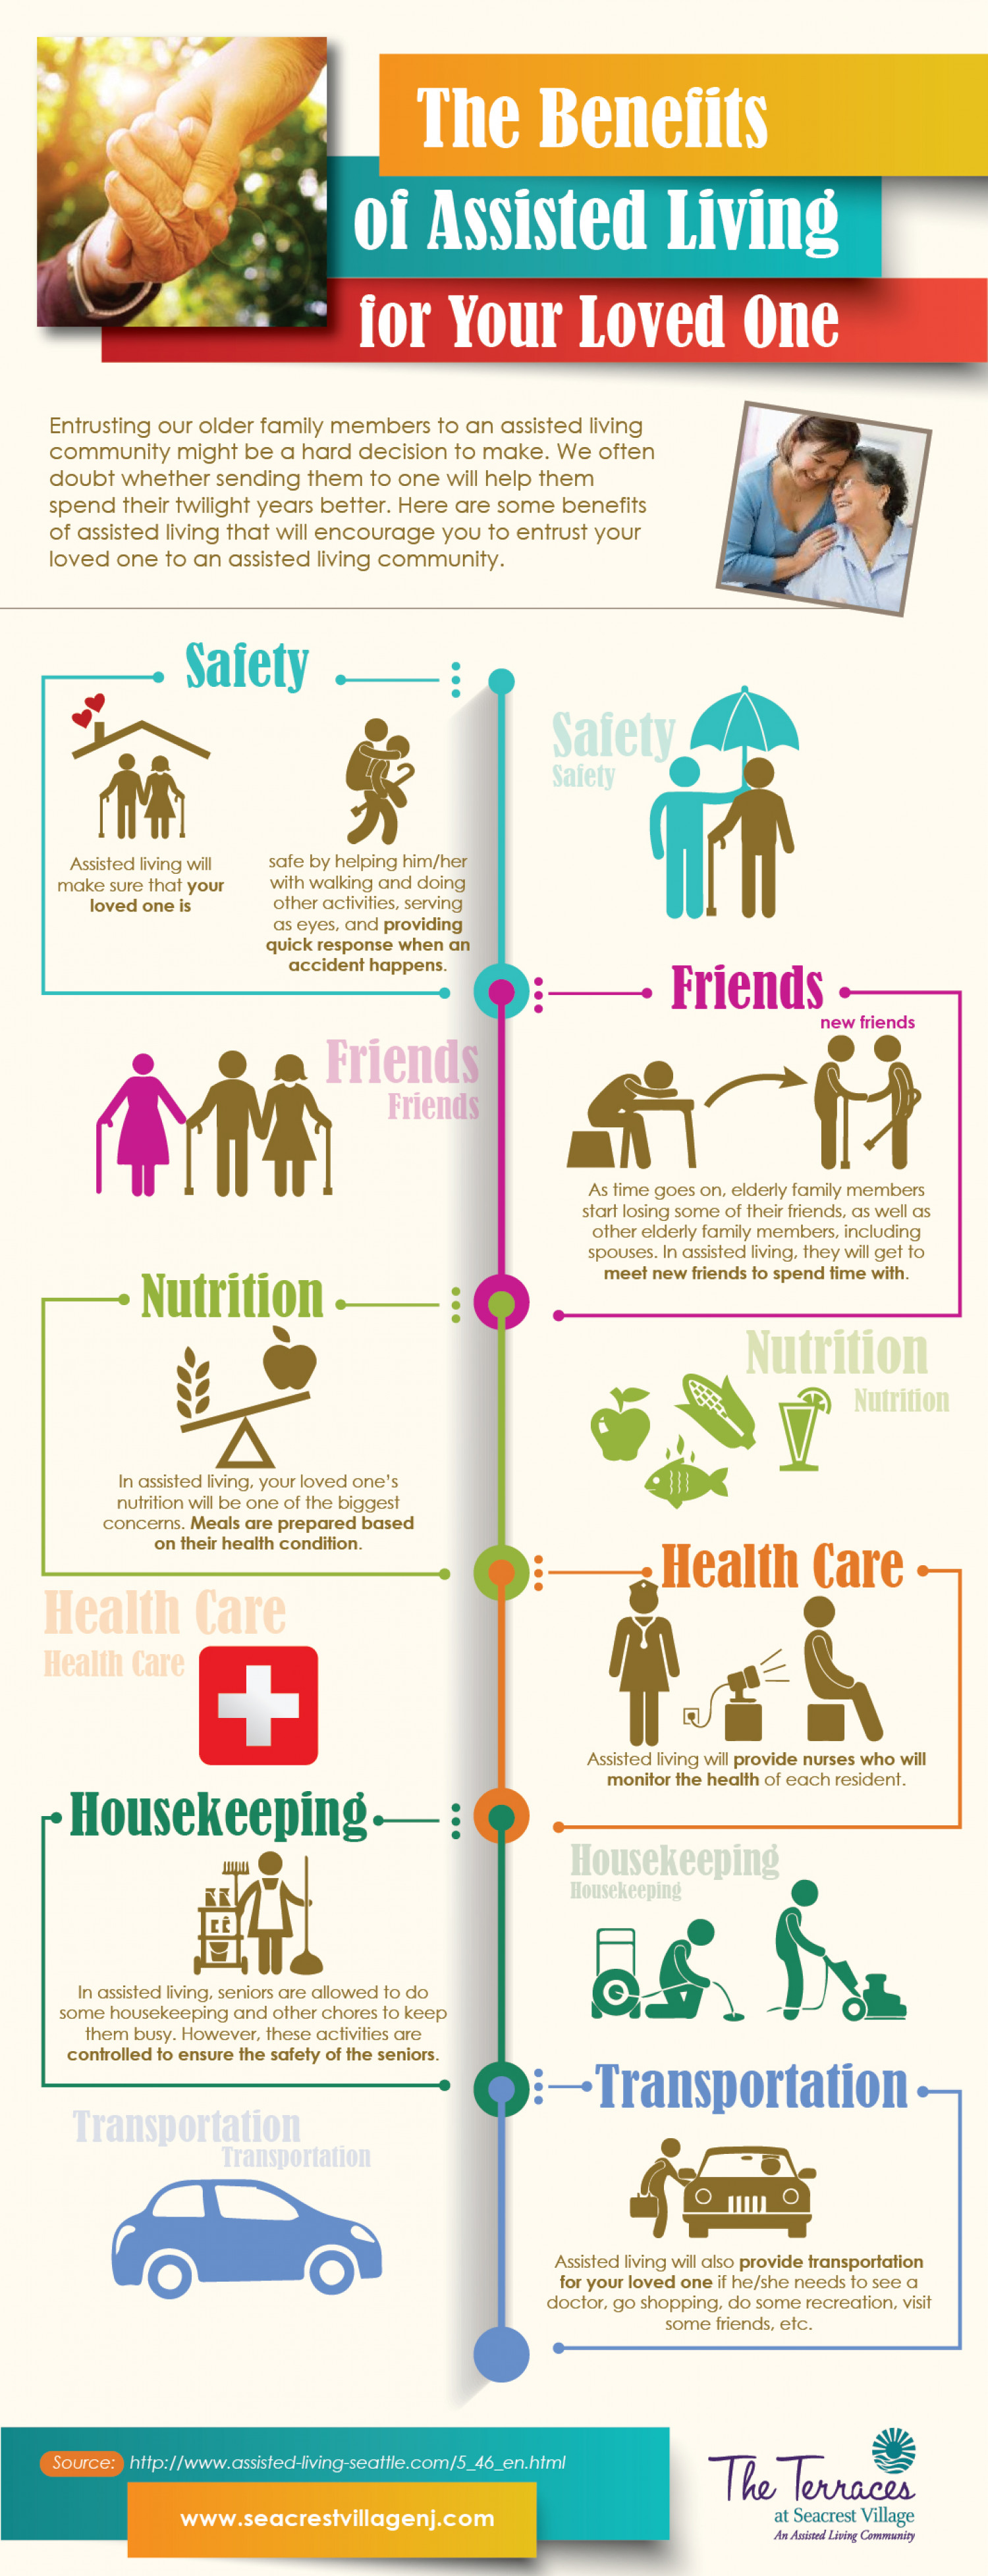 The Benefits of Assisted Living for Your Loved One Infographic